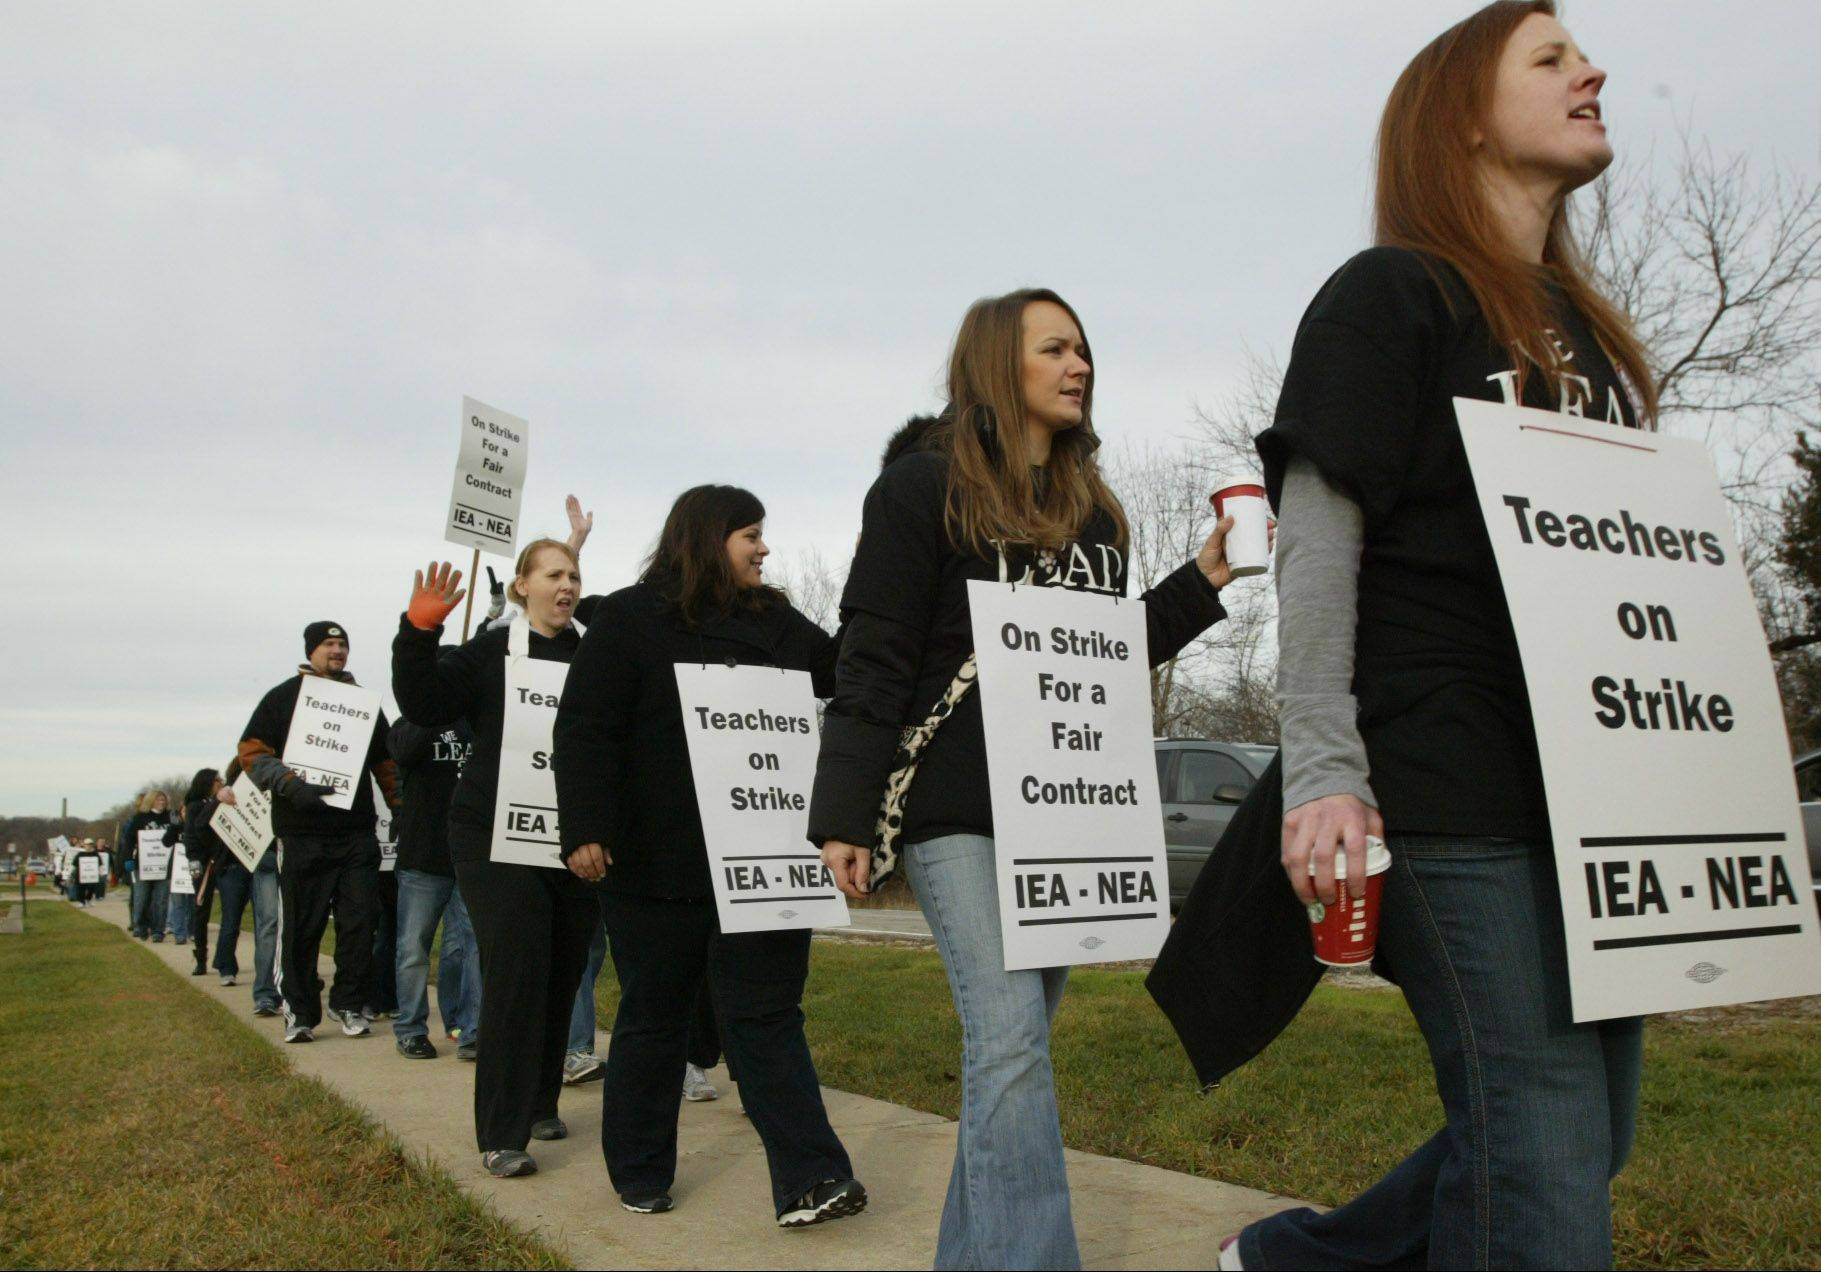 Community Unit District 300 teachers walk the picket line outside district headquarters after the teachers union went on strike Dec. 4. The strike only lasted for a day and teachers were able to ink a tentative agreement with the school district.